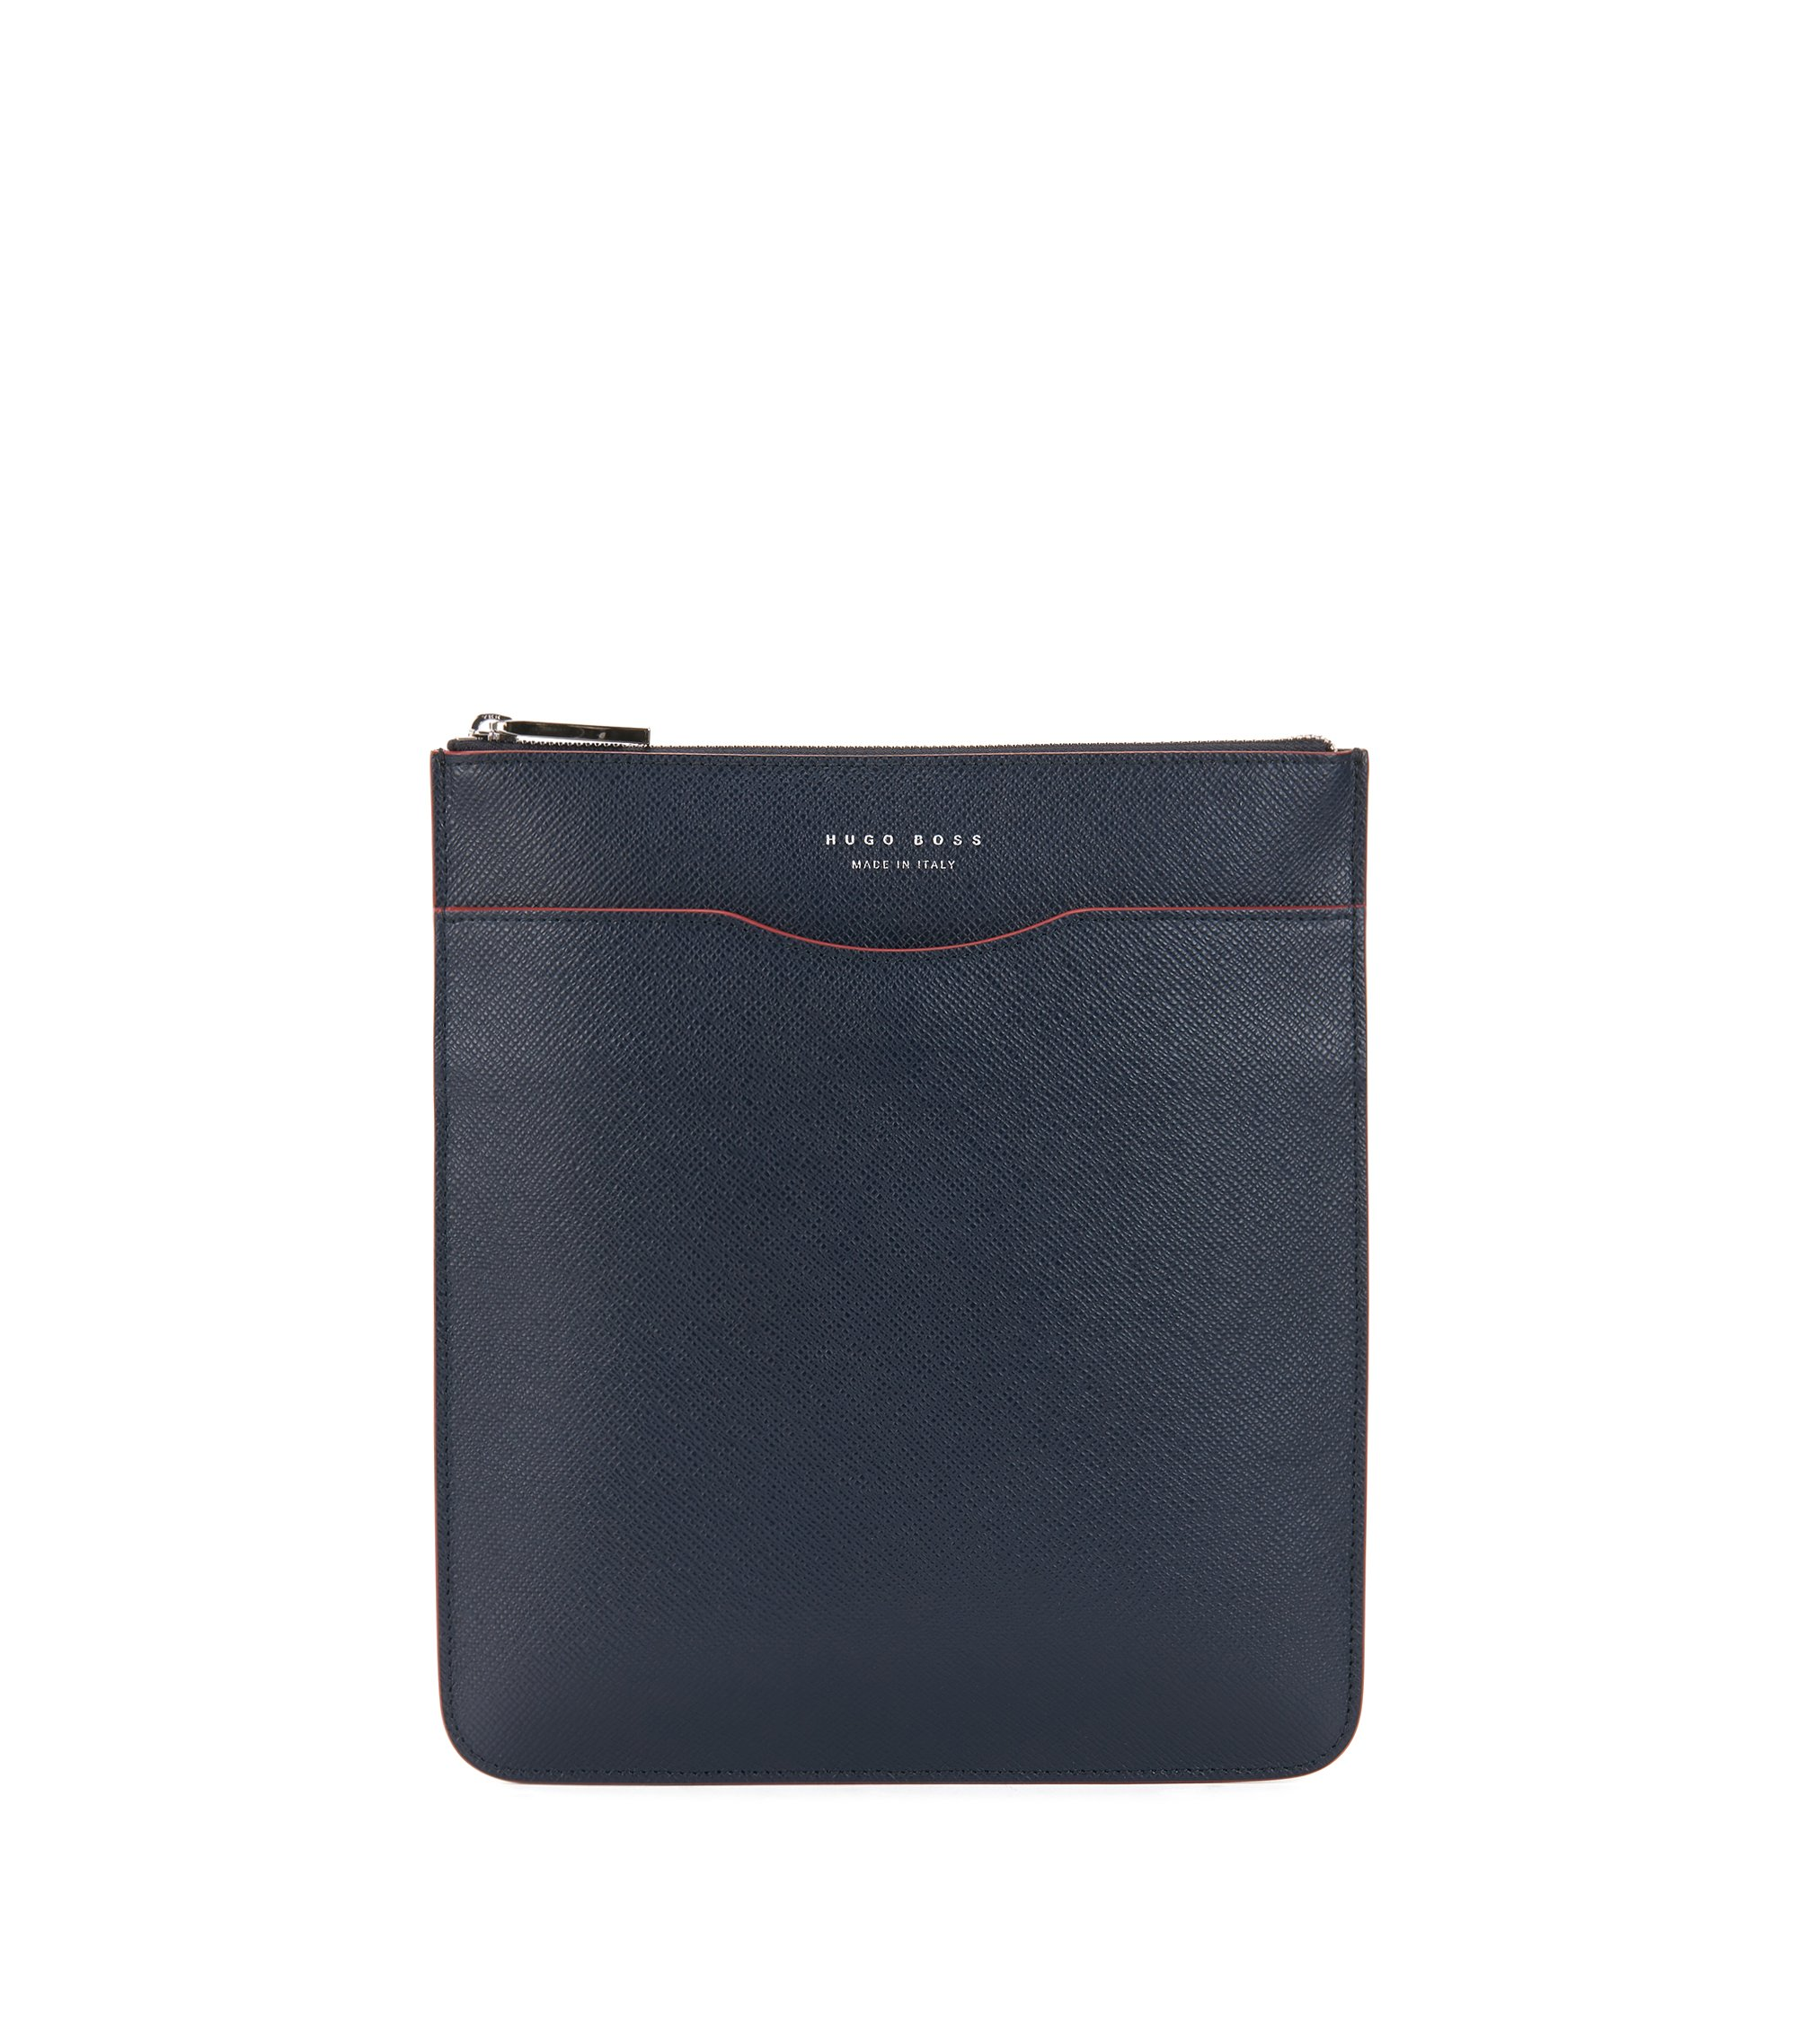 Signature Collection cross-body bag in Italian calf leather, Dark Blue